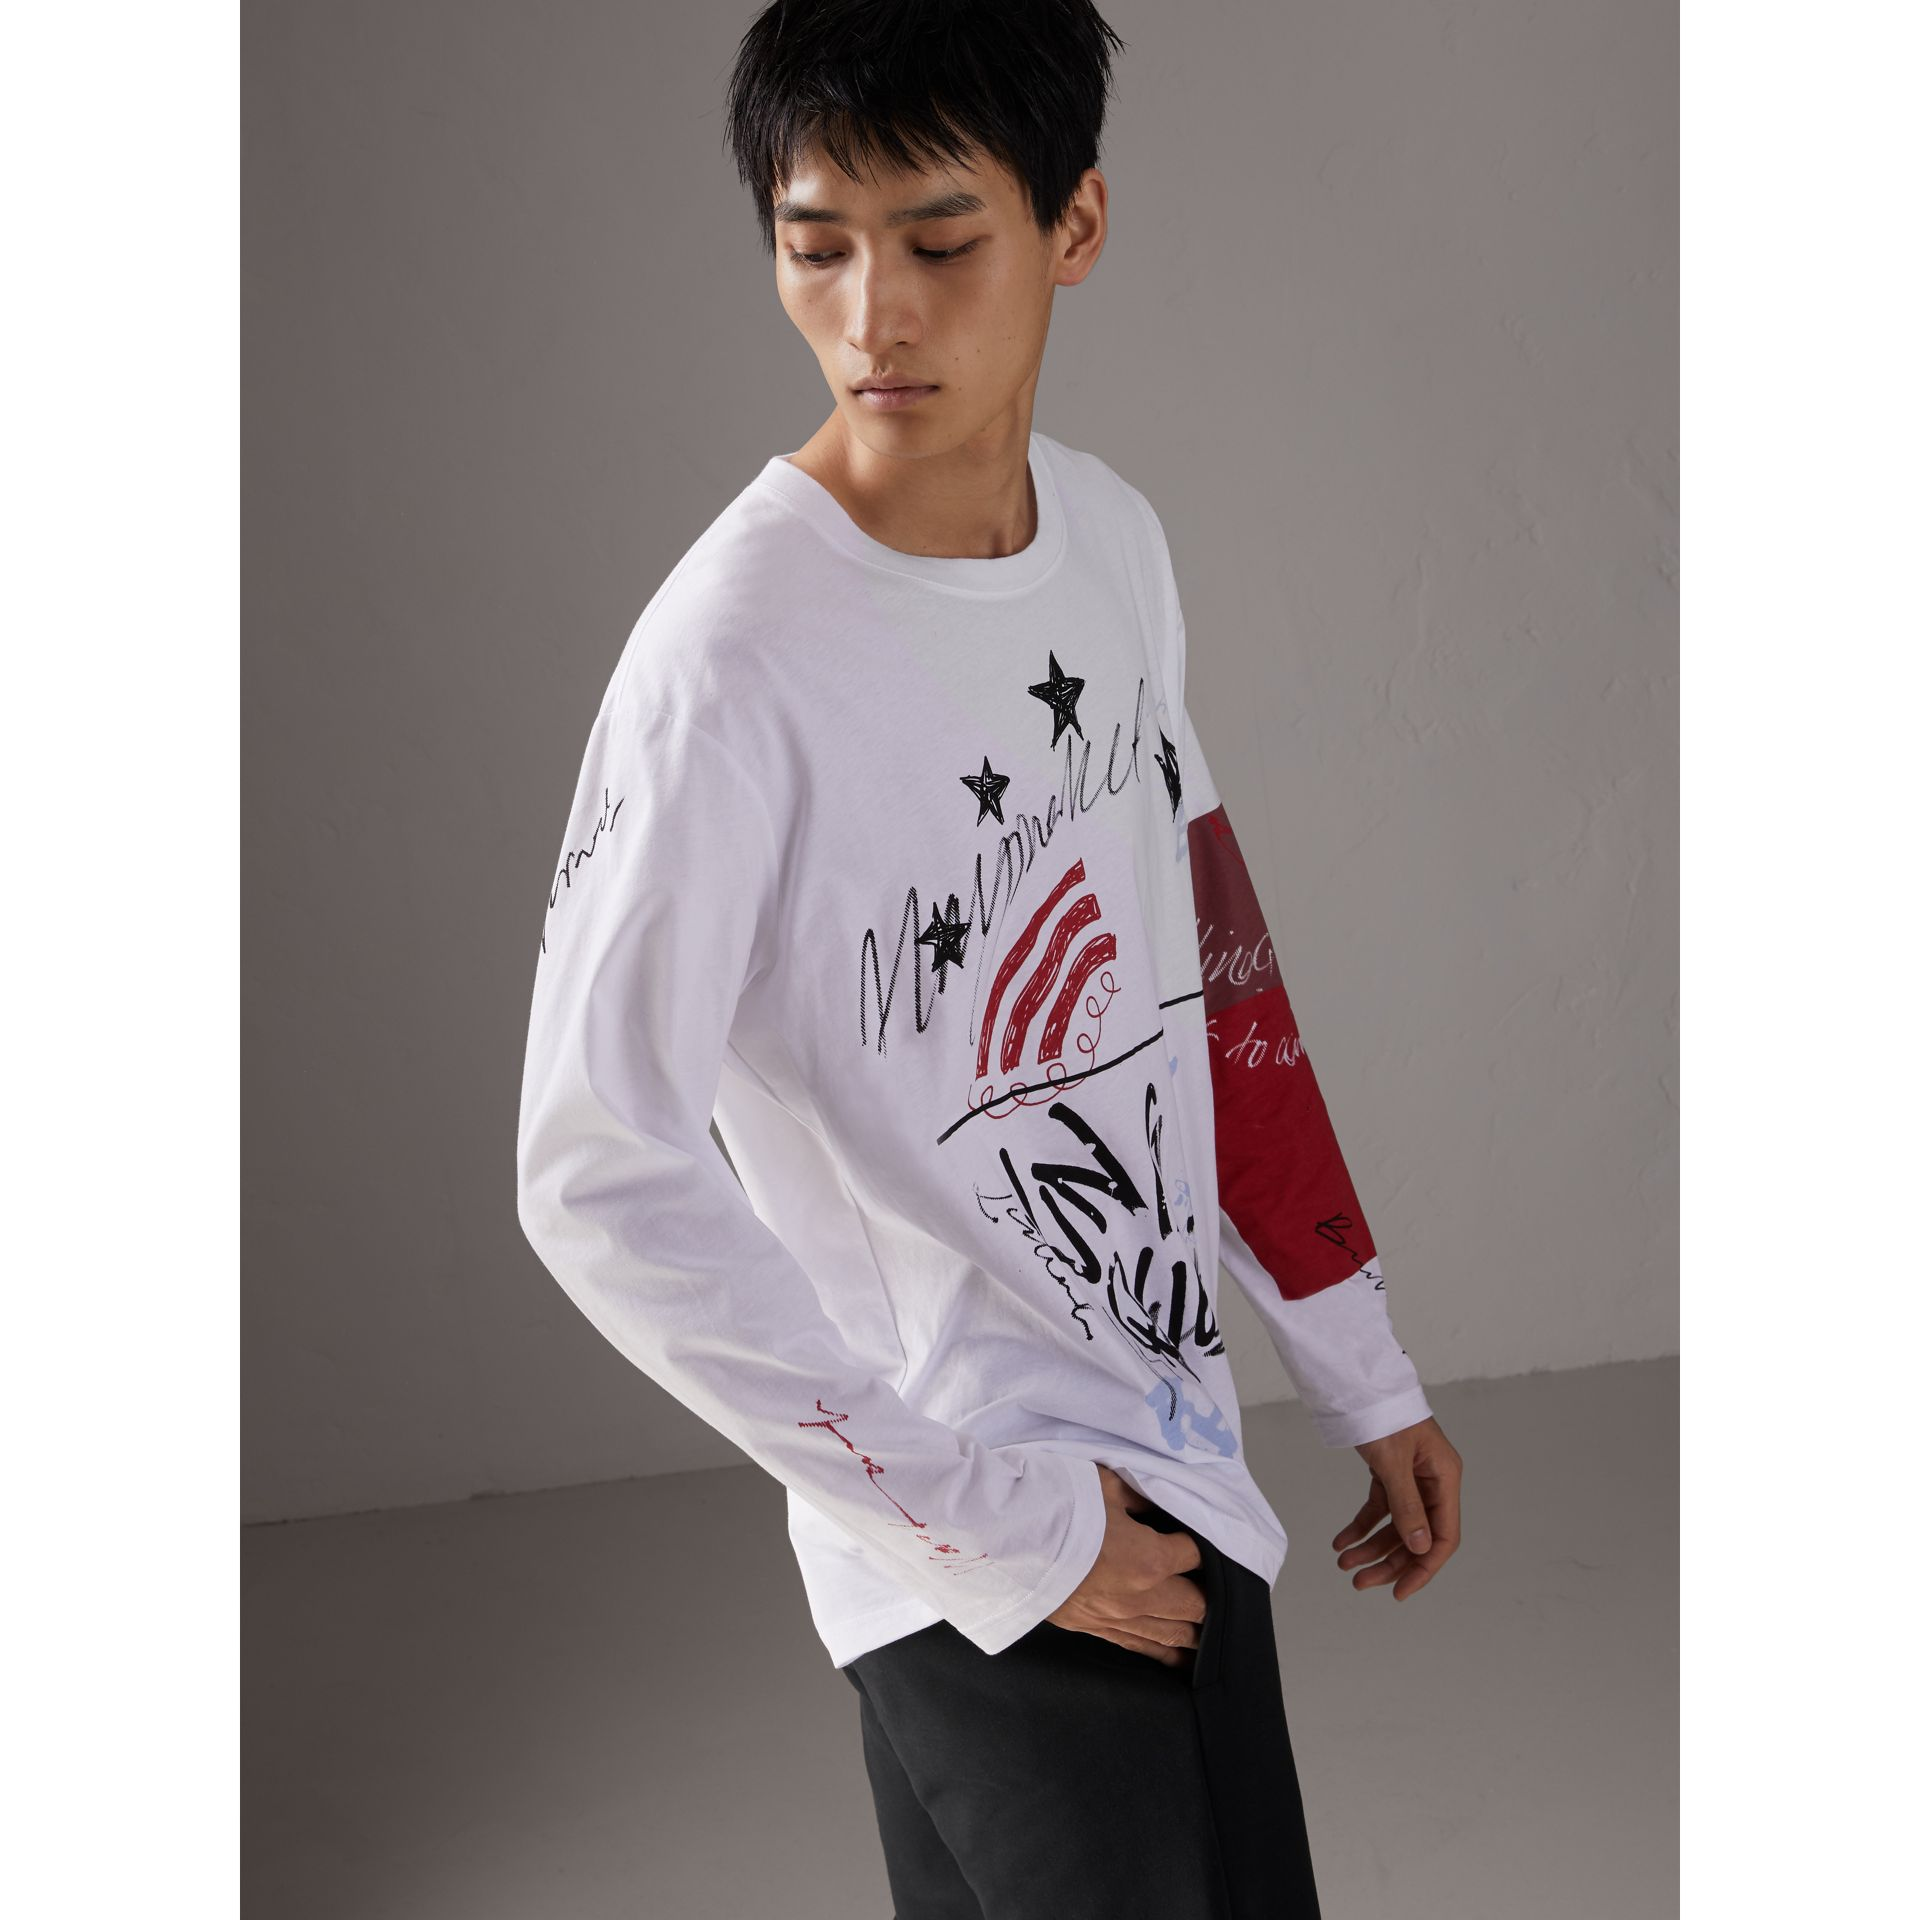 Burberry x Kris Wu Long-sleeve Printed Cotton Top in White - Men | Burberry Canada - gallery image 5